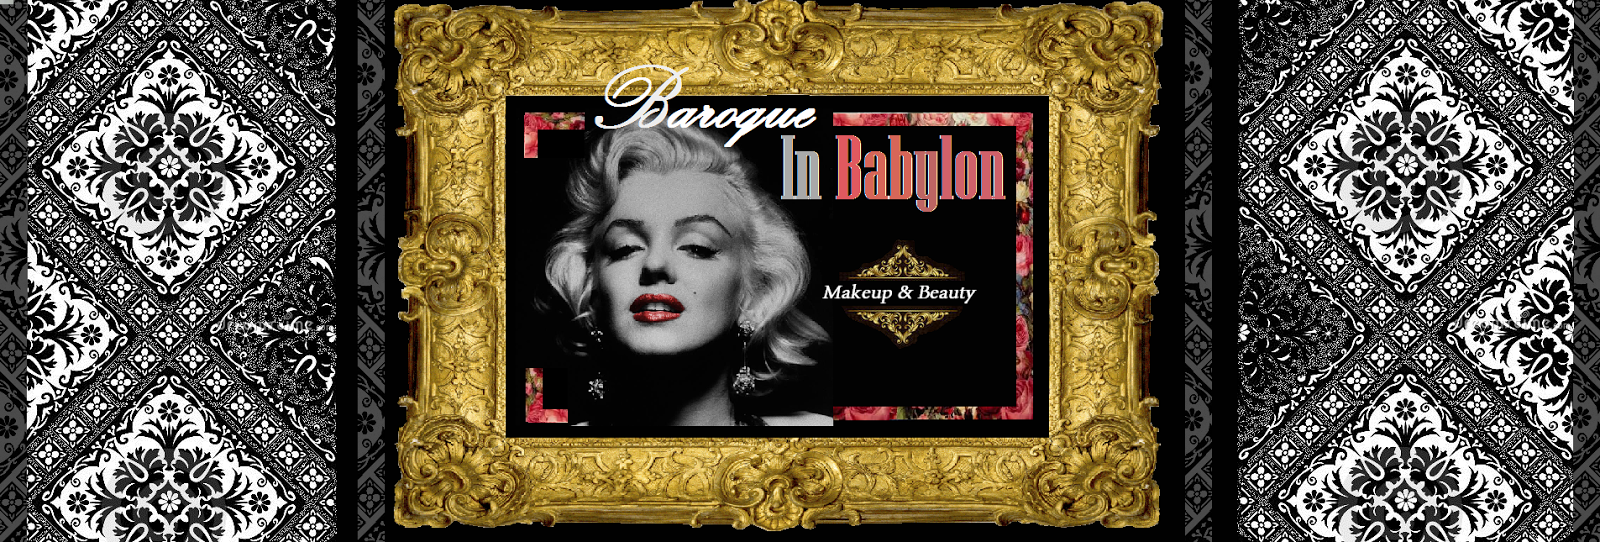 Baroque In Babylon